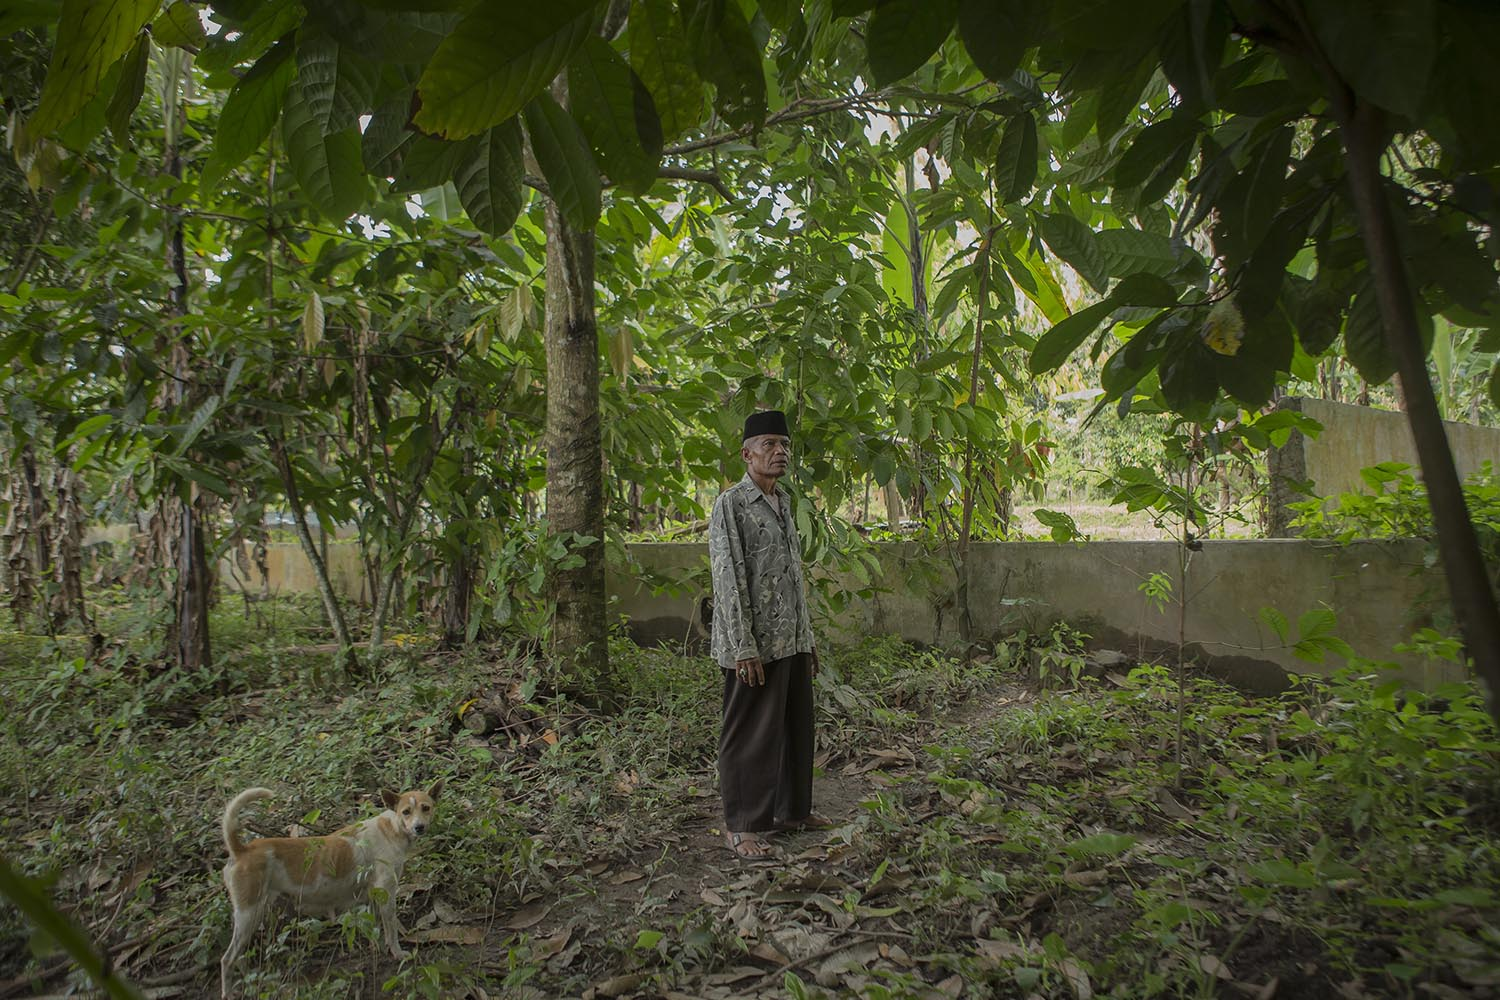 Muhajirin Tanjung Imam Nan Basa in his farm. After retiring from the army, he chose to stay in his home town. JP/Ramadhani